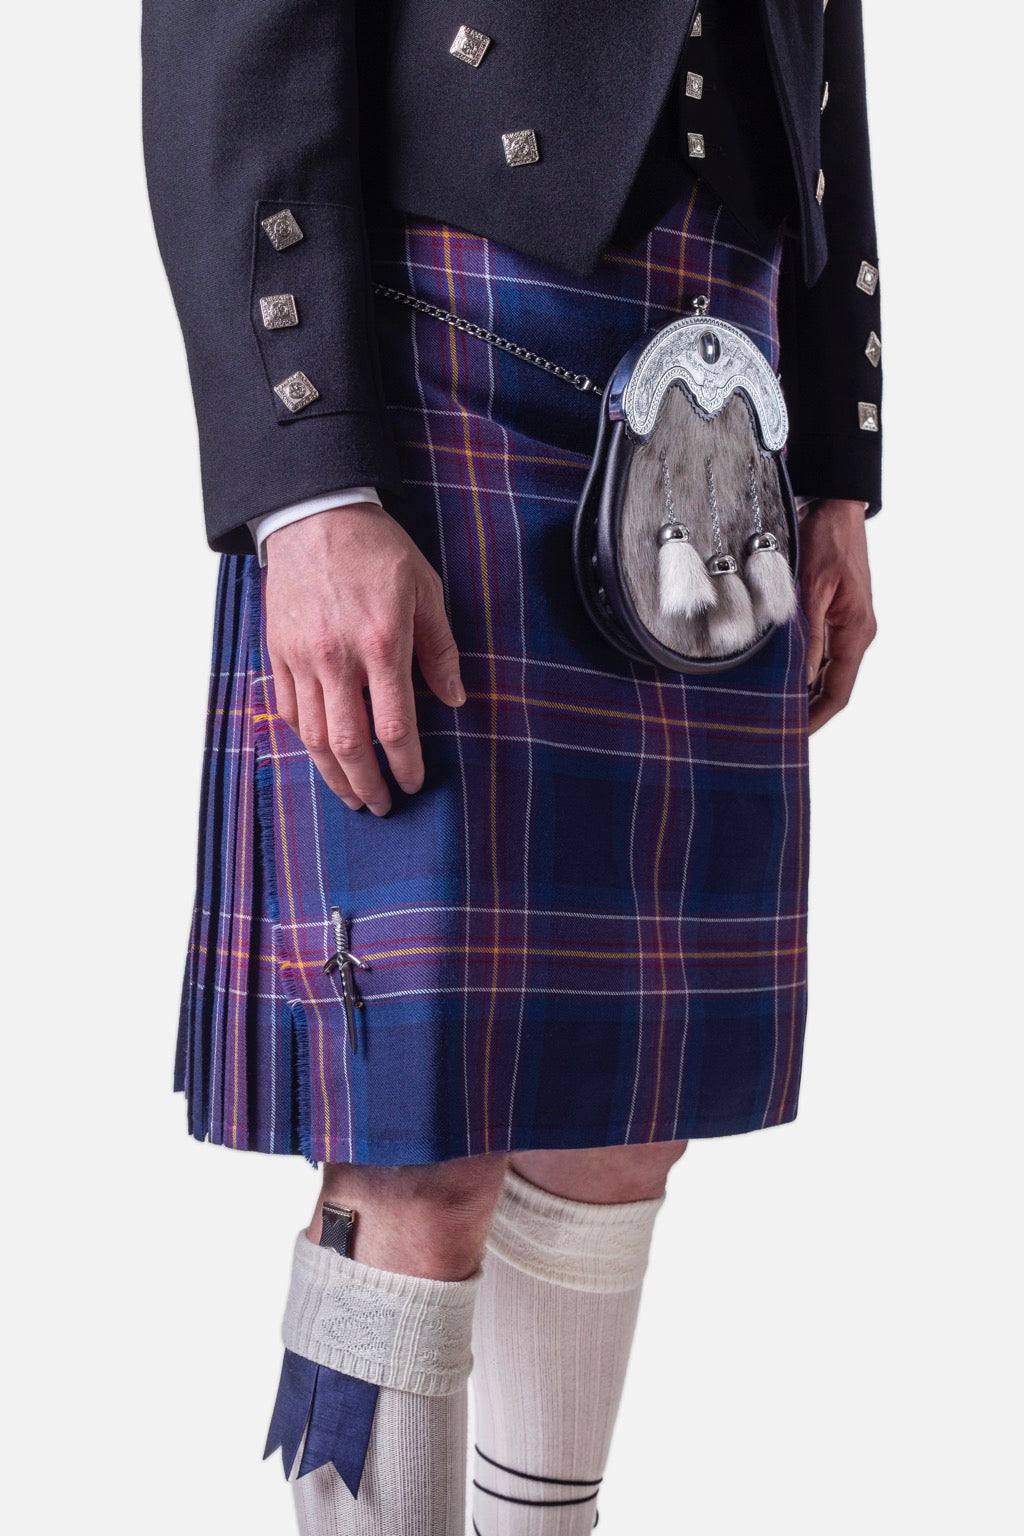 Scotland National Team Hire Kilt